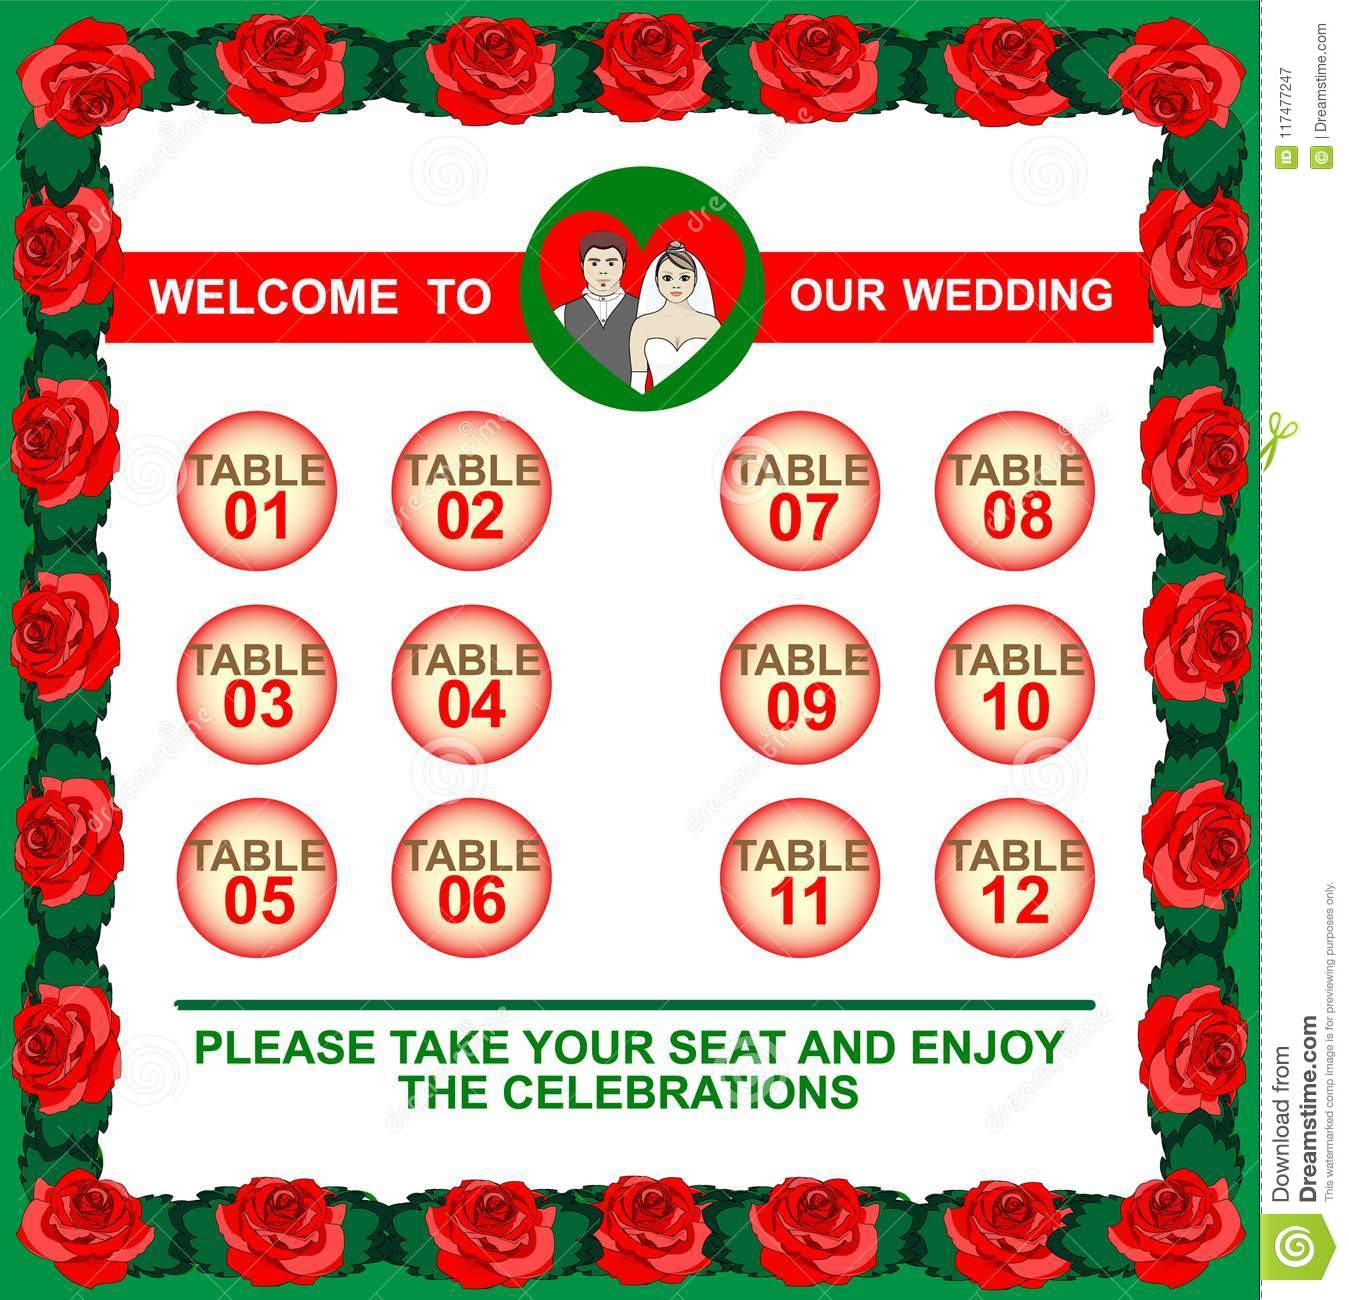 bright frame made of roses and a guest list wedding seating chart